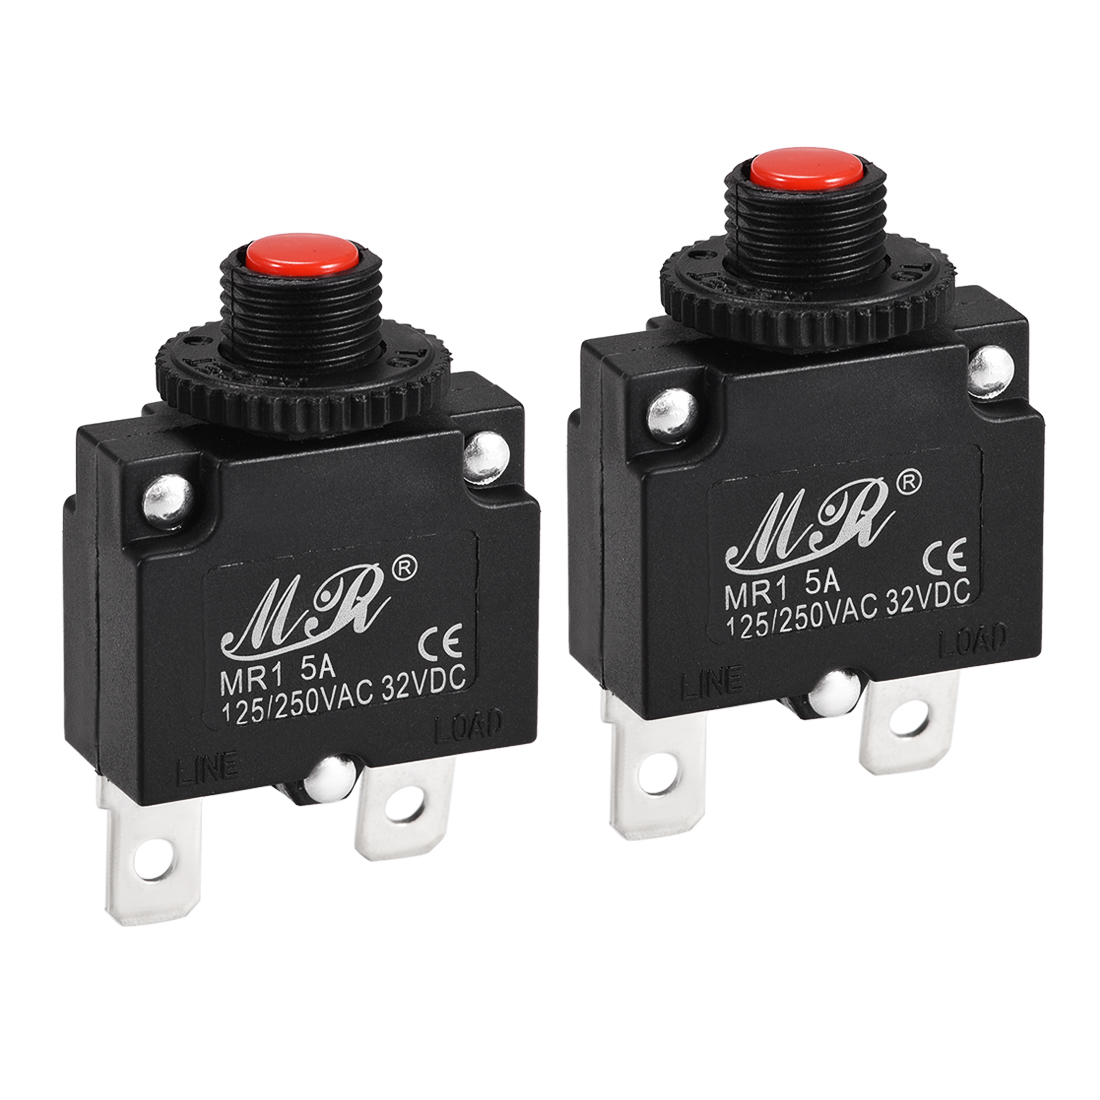 2 Pcs 5A Push Button Manual Reset Overload Protector Thermal Circuit Breakers